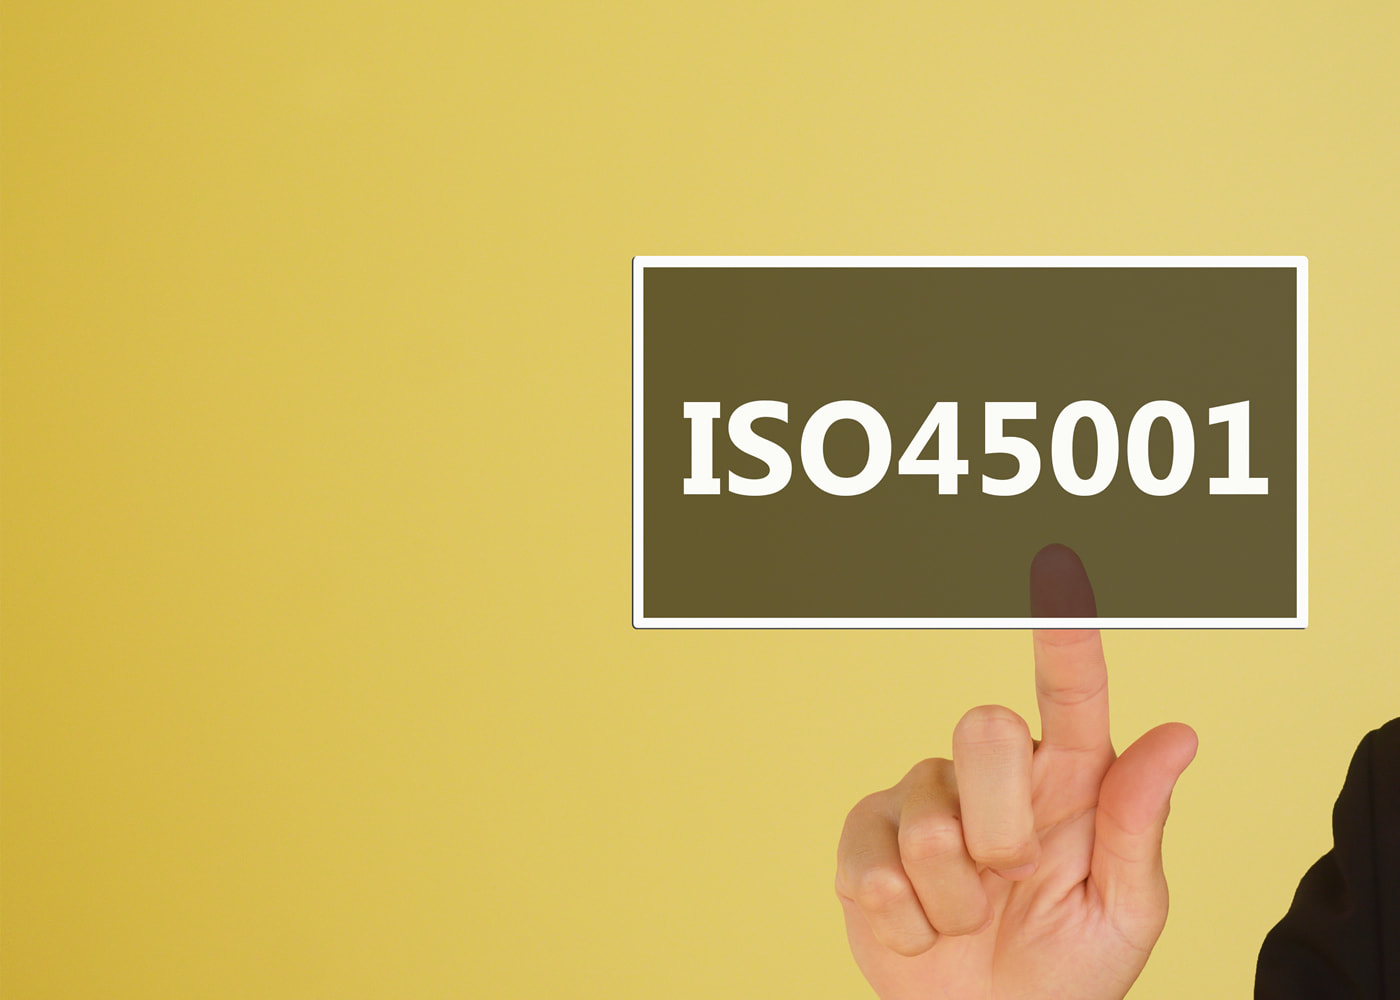 naem-2021-blog-2021-04-iso-45001-stay-ahead-of-the-curve-six-strategic-considerations-for-health-safety-700x500-min